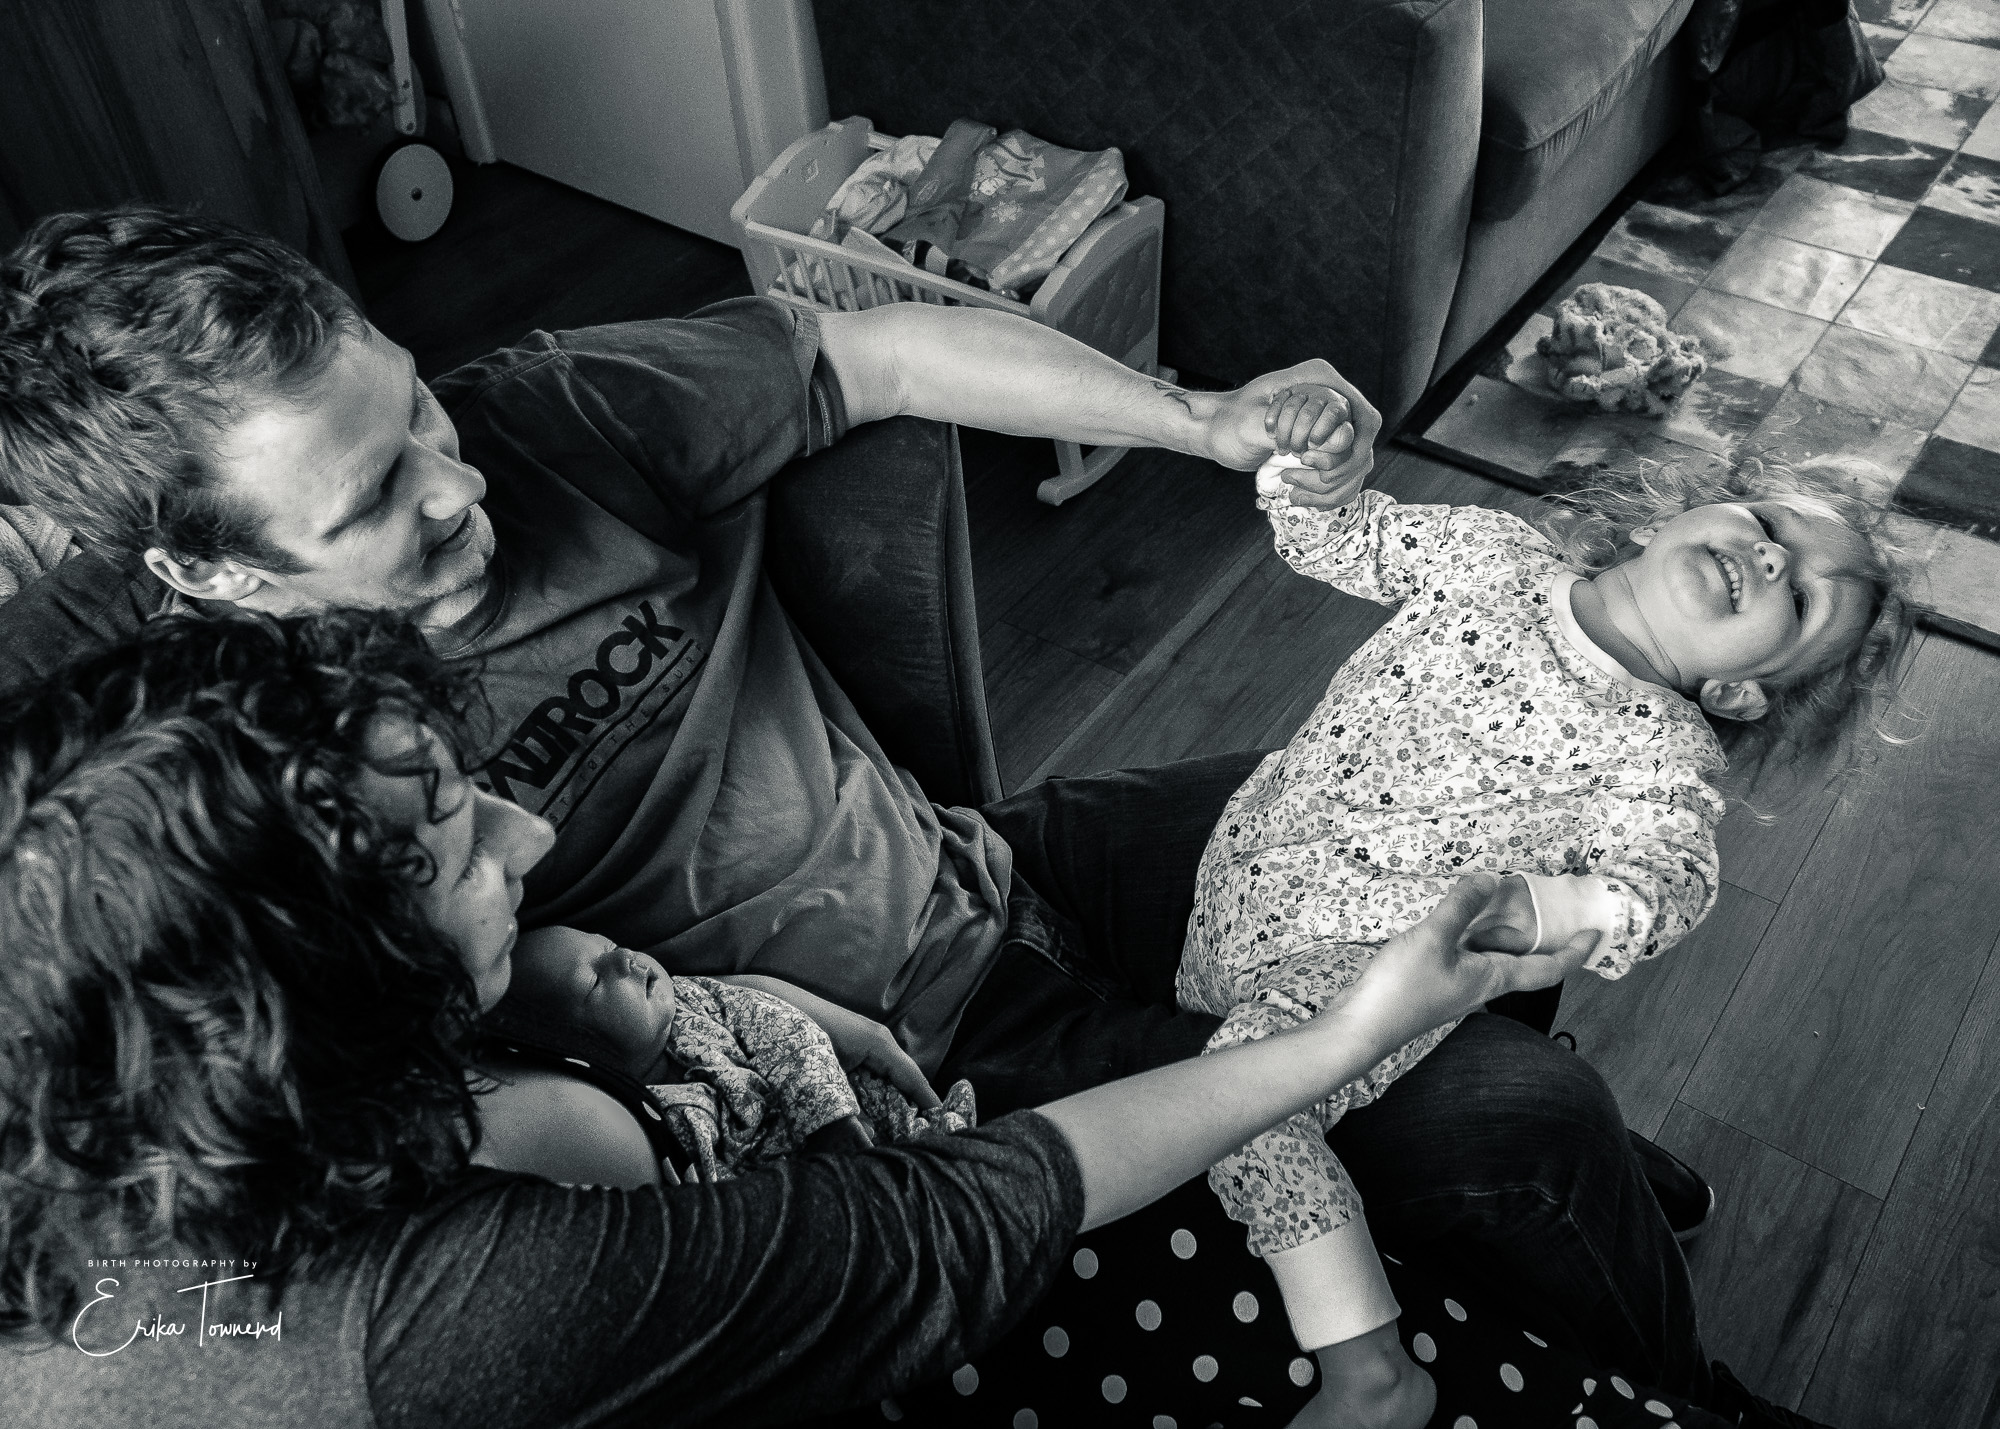 Documentary black and white image of having fun playing row row my boat with their eldest and their newborn in their laps fast asleep